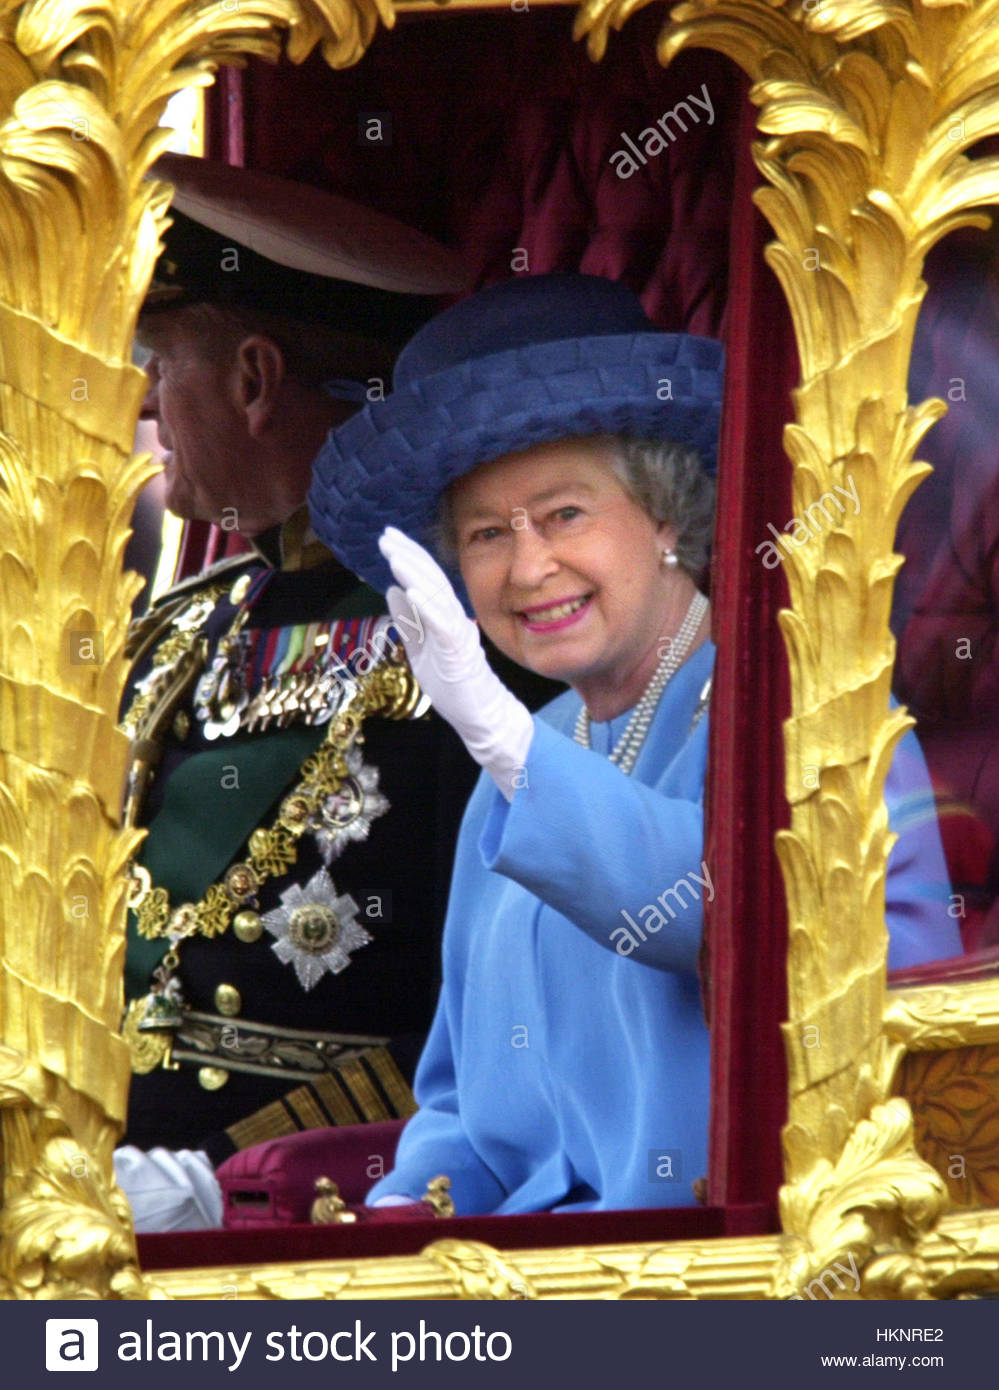 Forum on this topic: Queen Elizabeth is about to make history, queen-elizabeth-is-about-to-make-history/